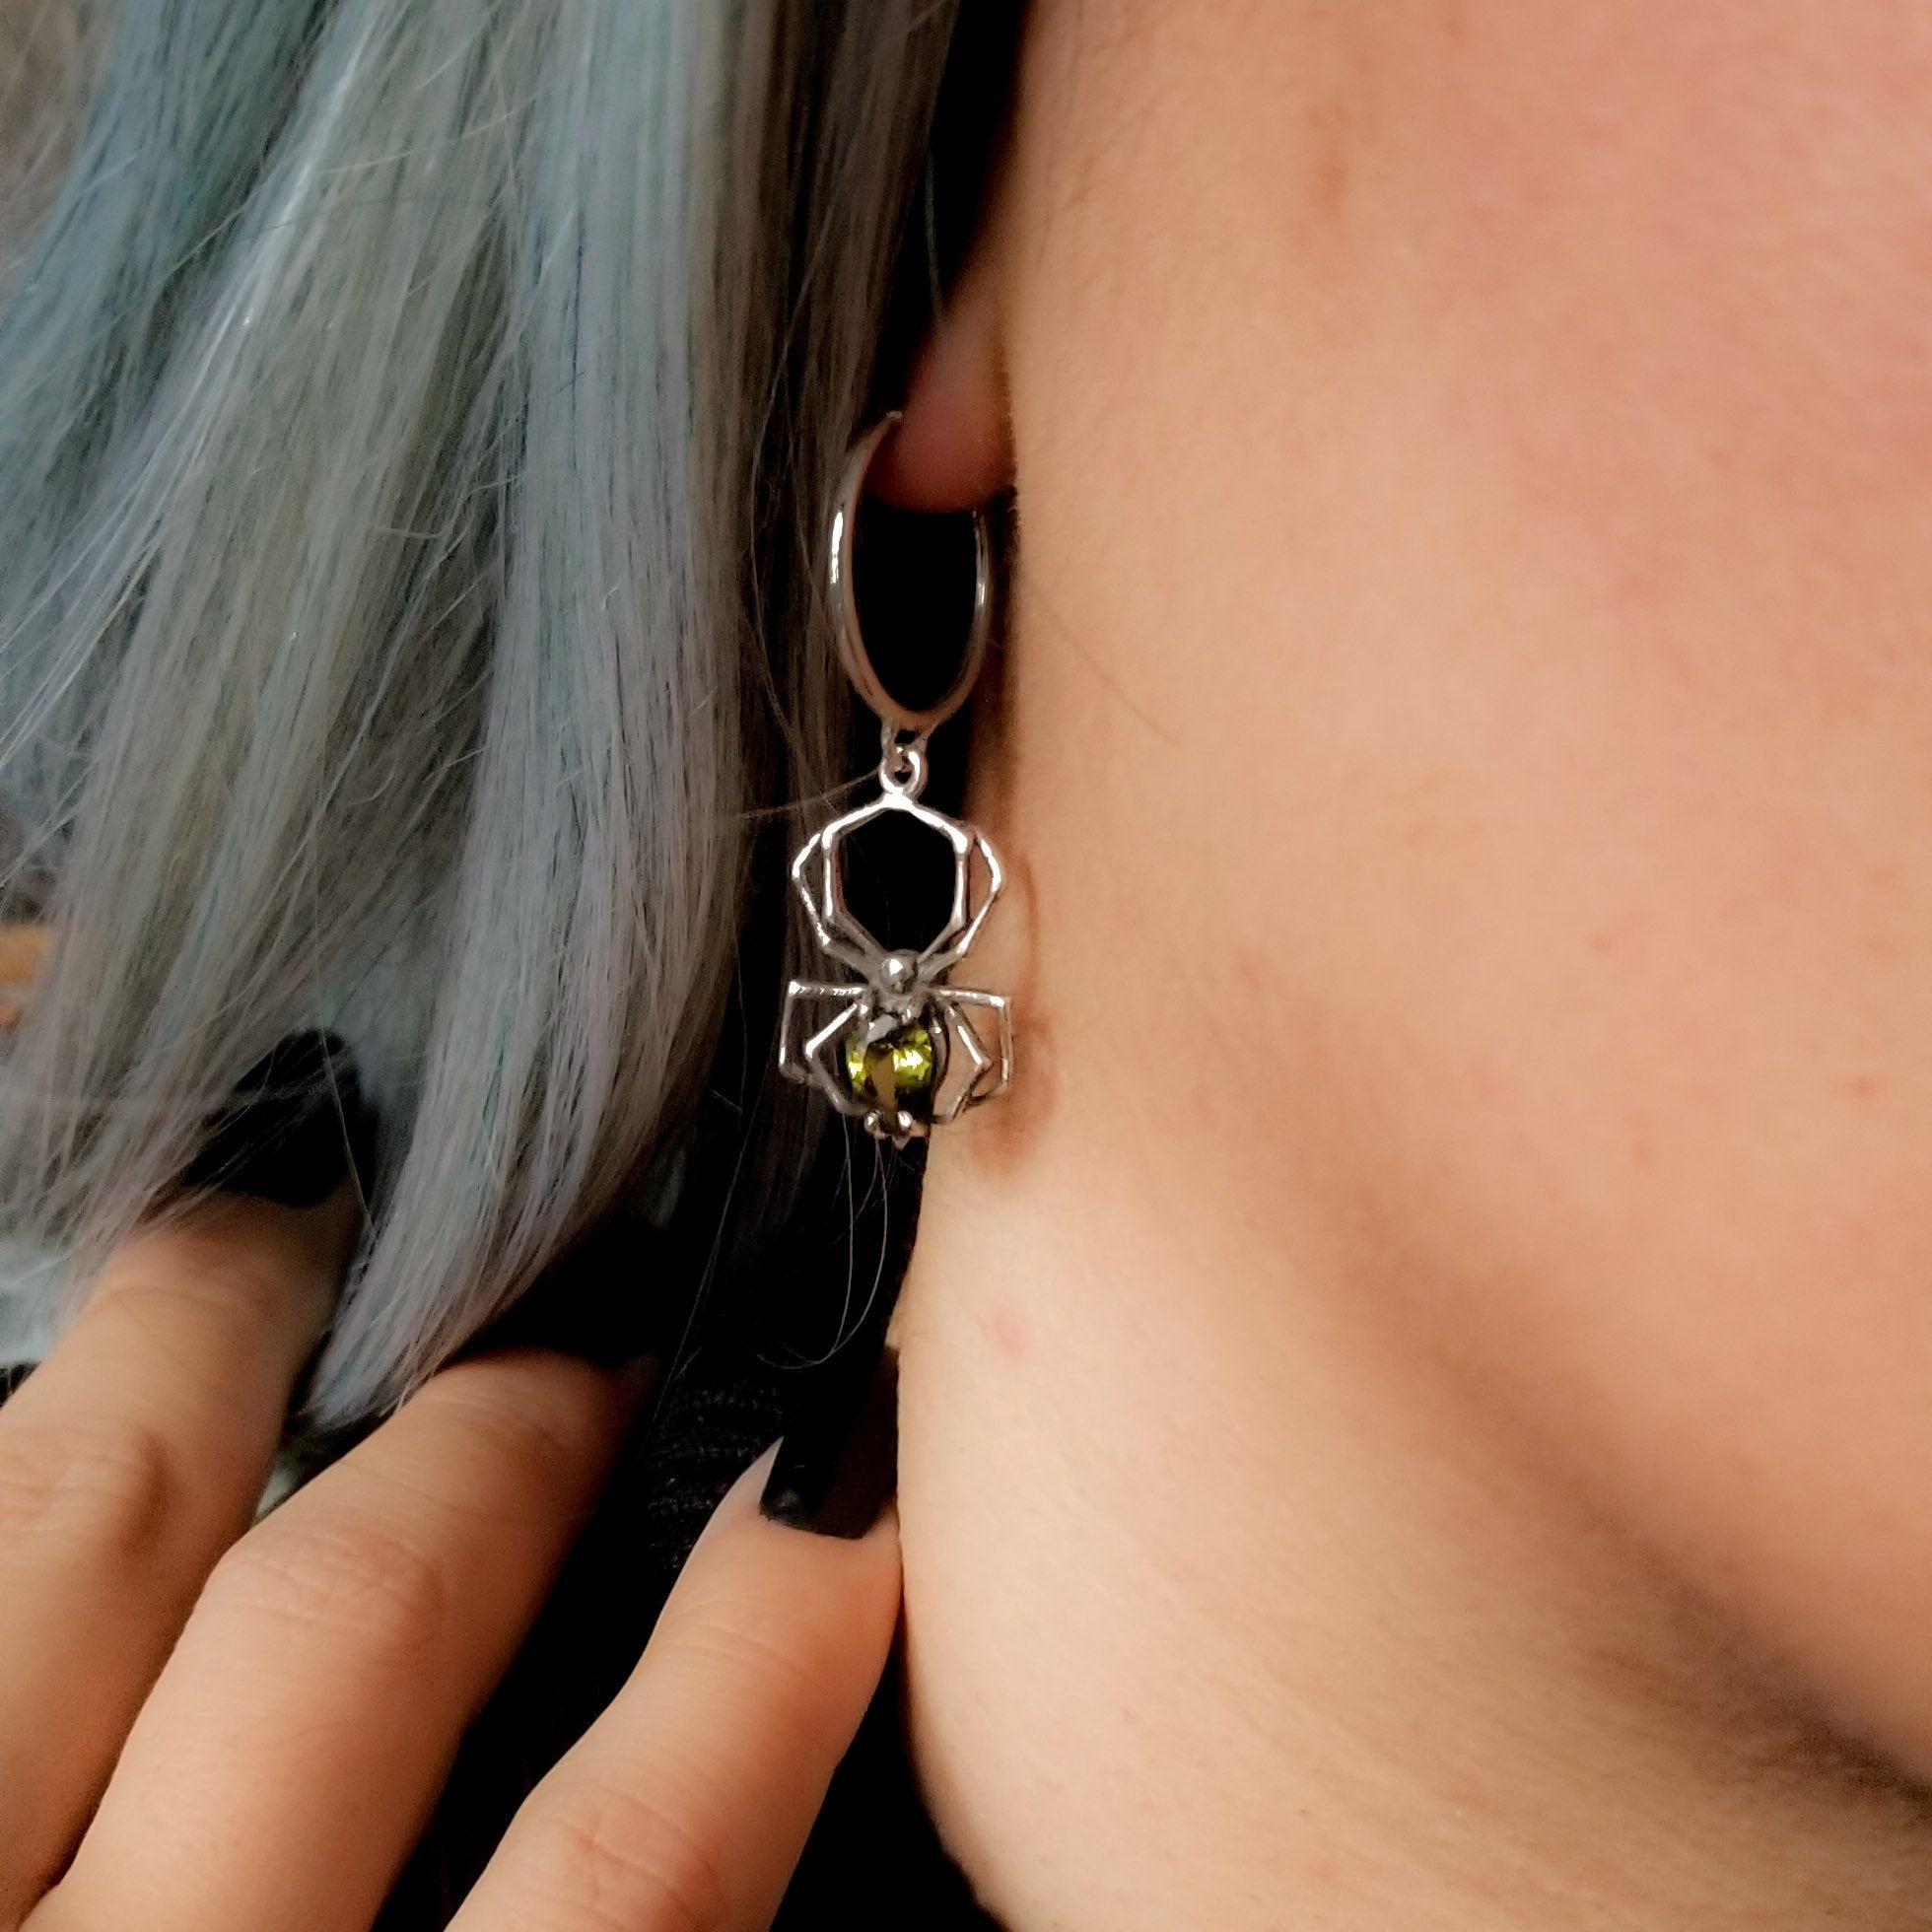 Green Spider Hoop Earrings - Inchoo Bijoux